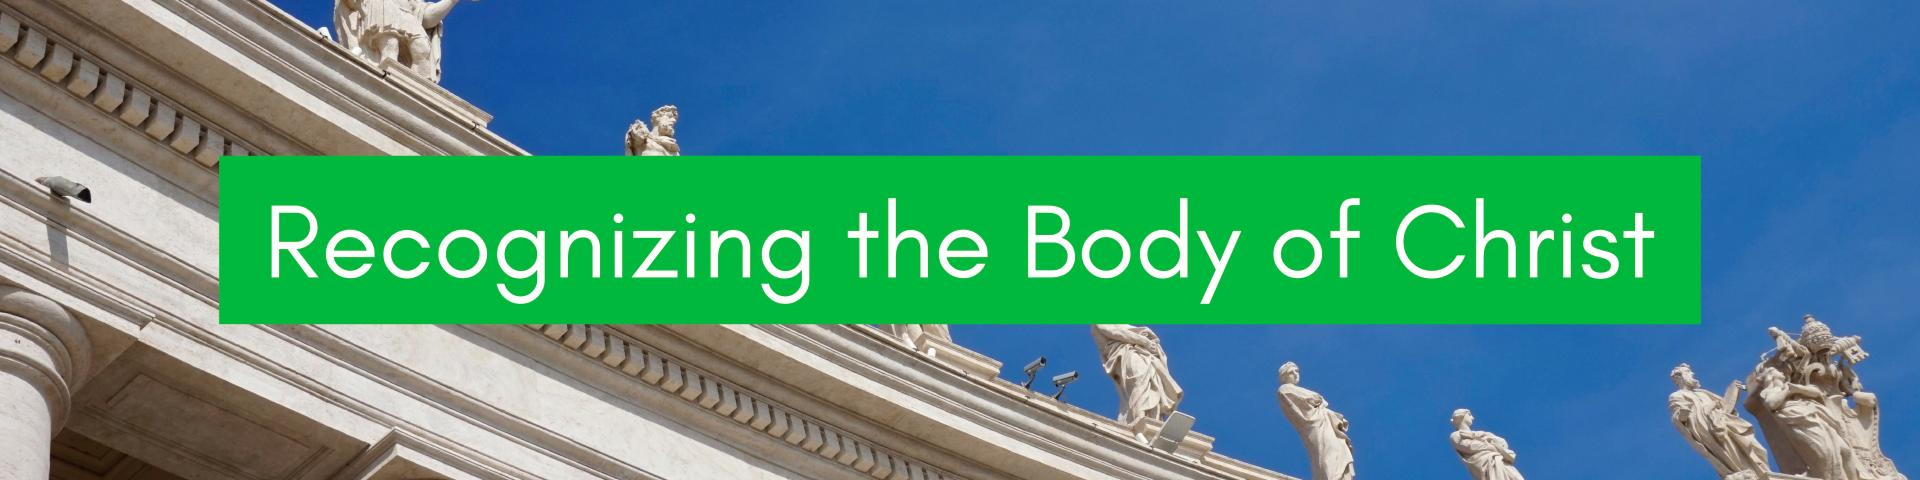 Recognizing the Body of Christ